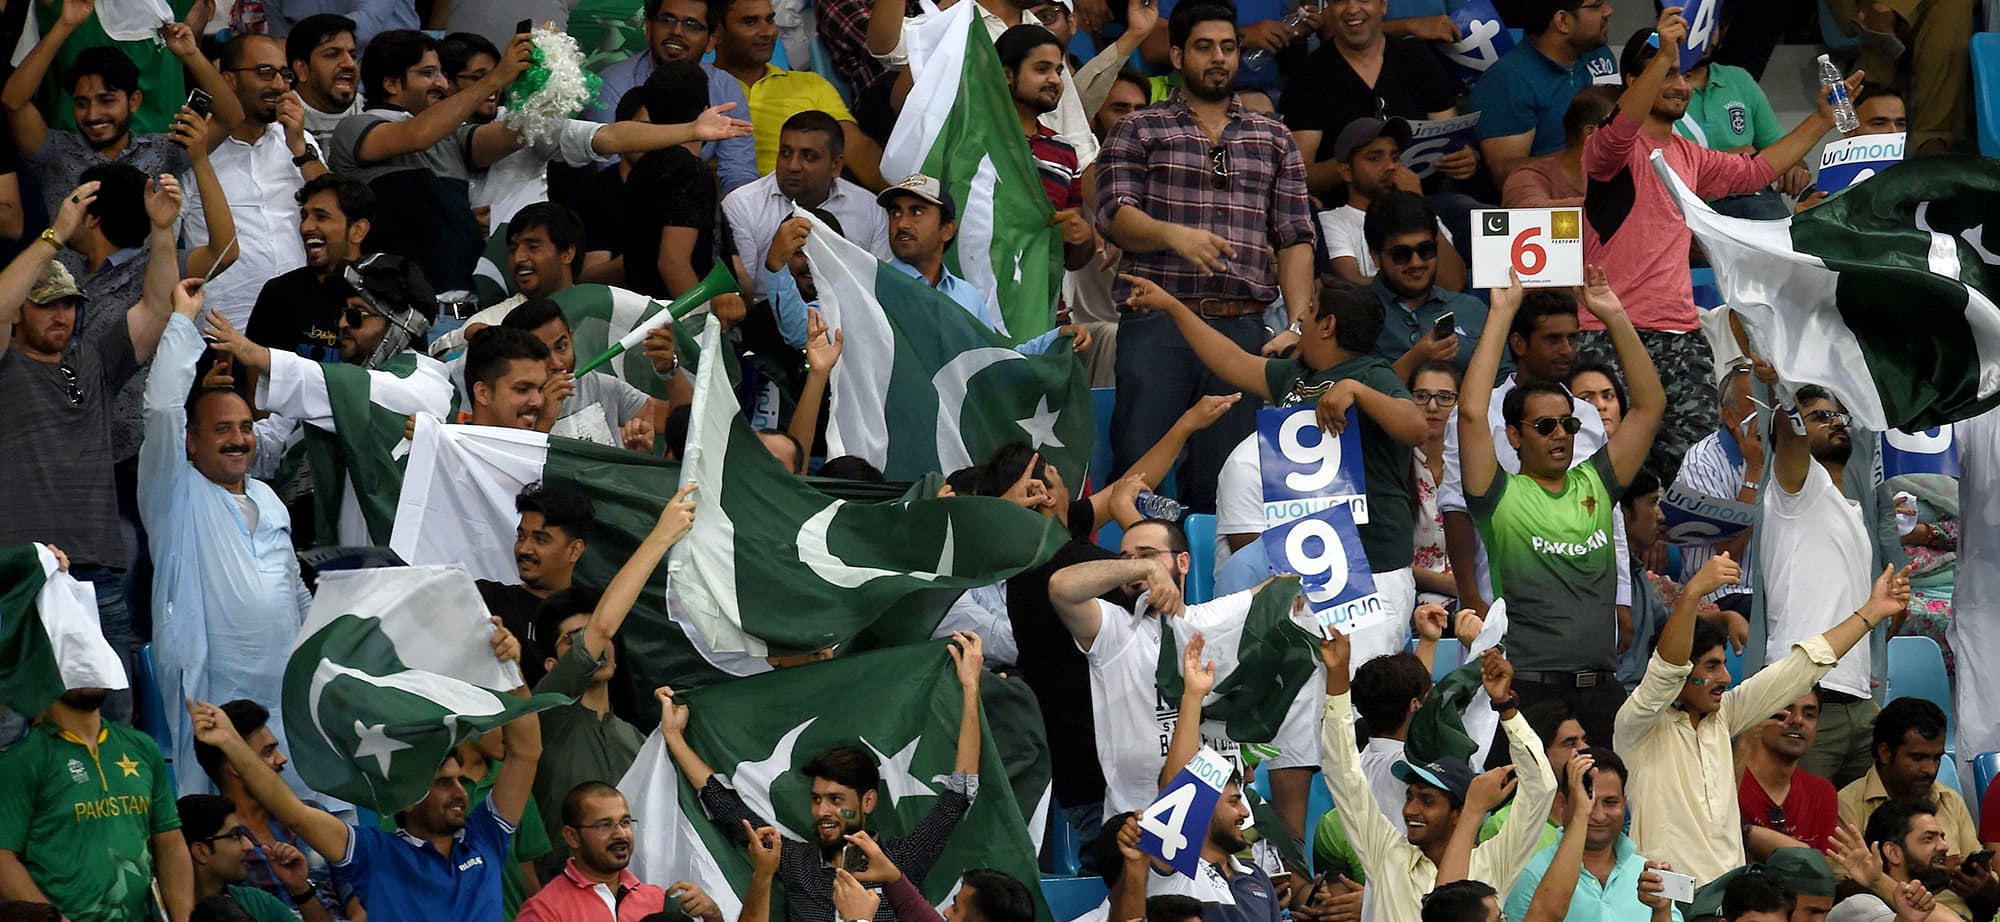 Pakistan cricket fan cheer in support of their national team during the one day international (ODI) Asia Cup cricket match between Pakistan and India at the Dubai International Cricket Stadium in Dubai on September 19, 2018. (Photo by ISHARA S. KODIKARA / AFP) — AFP or licensors